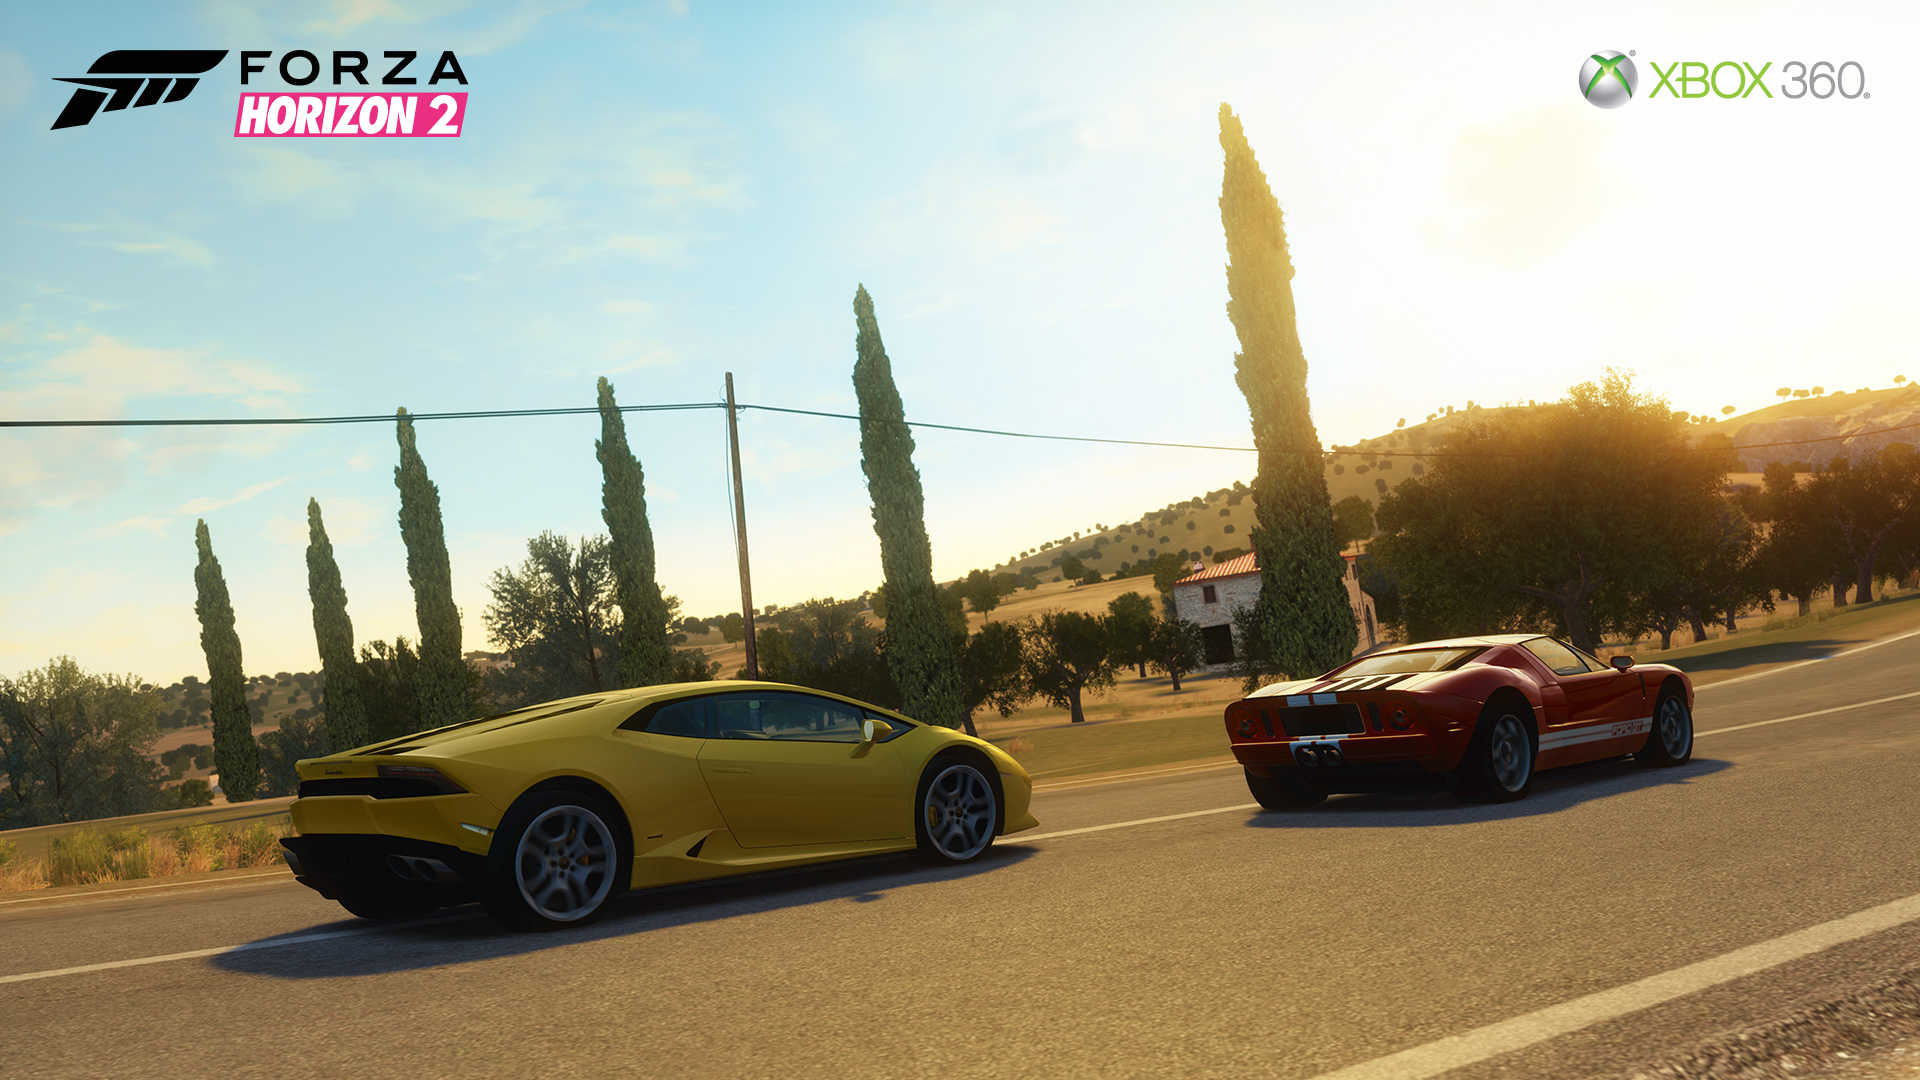 forza motorsport forza horizon 2 on xbox 360. Black Bedroom Furniture Sets. Home Design Ideas